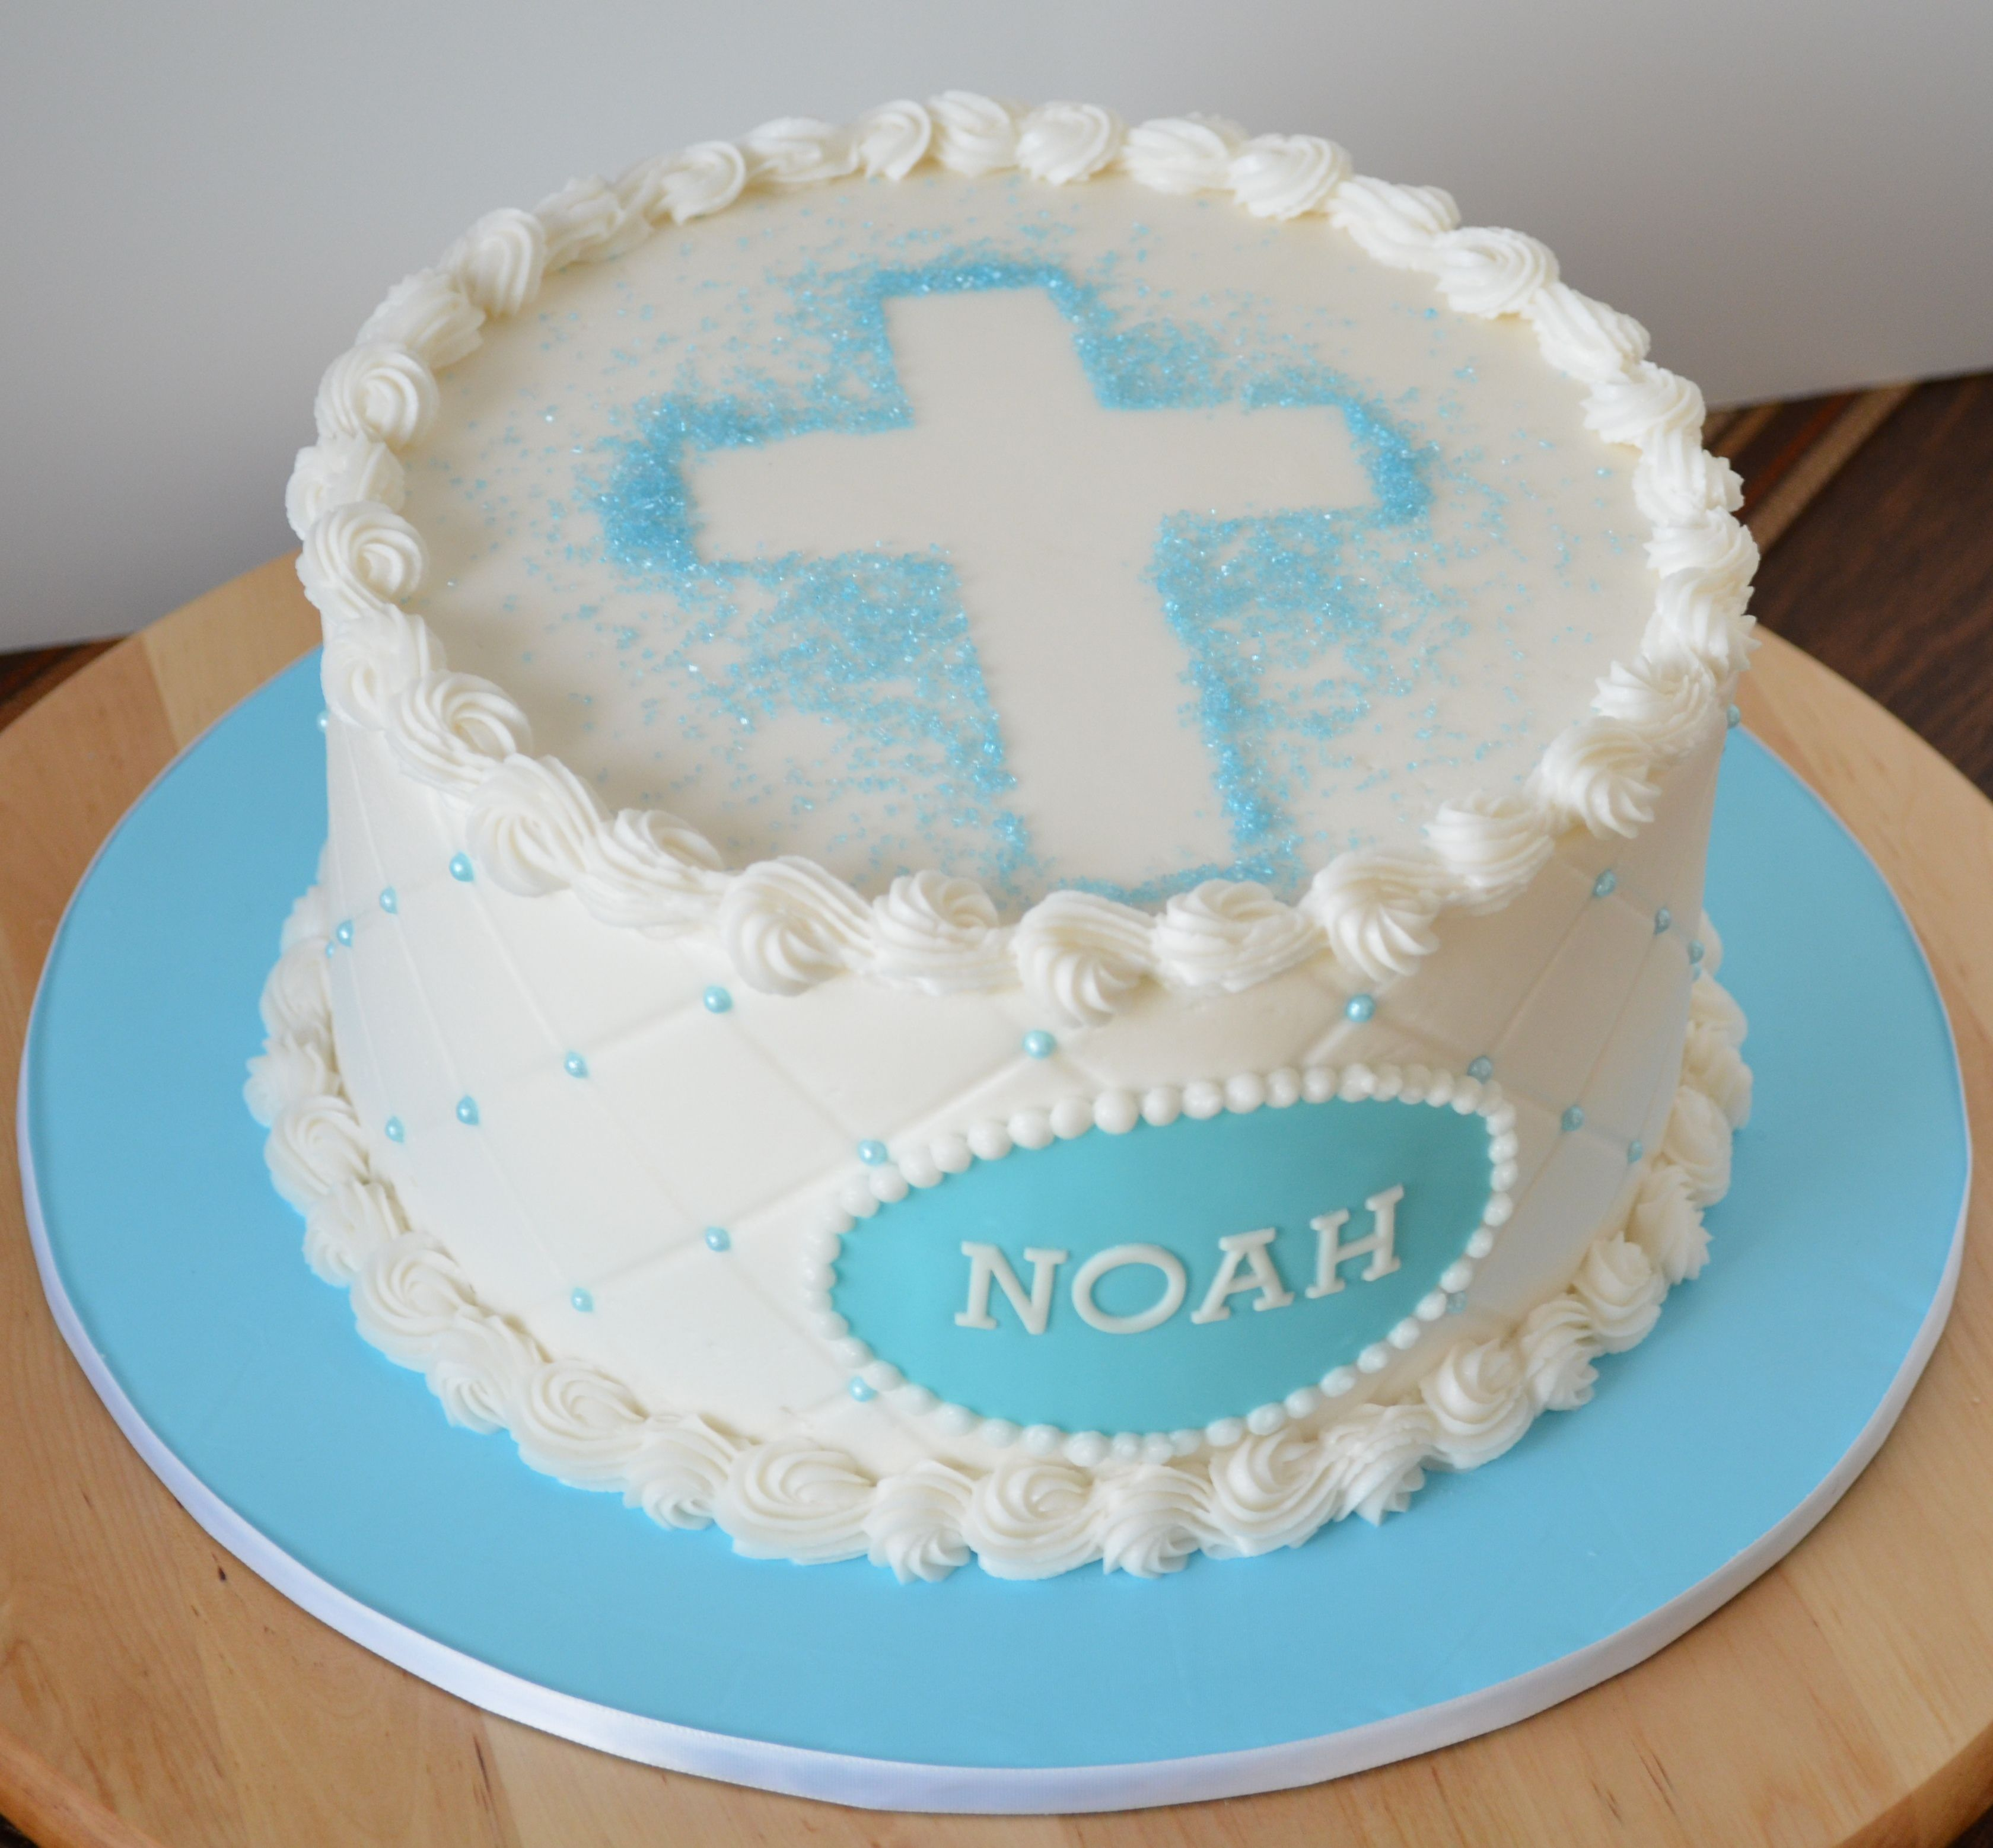 Cake Design Christening : Baby Dedication Cake on Pinterest Baptismal Cakes ...